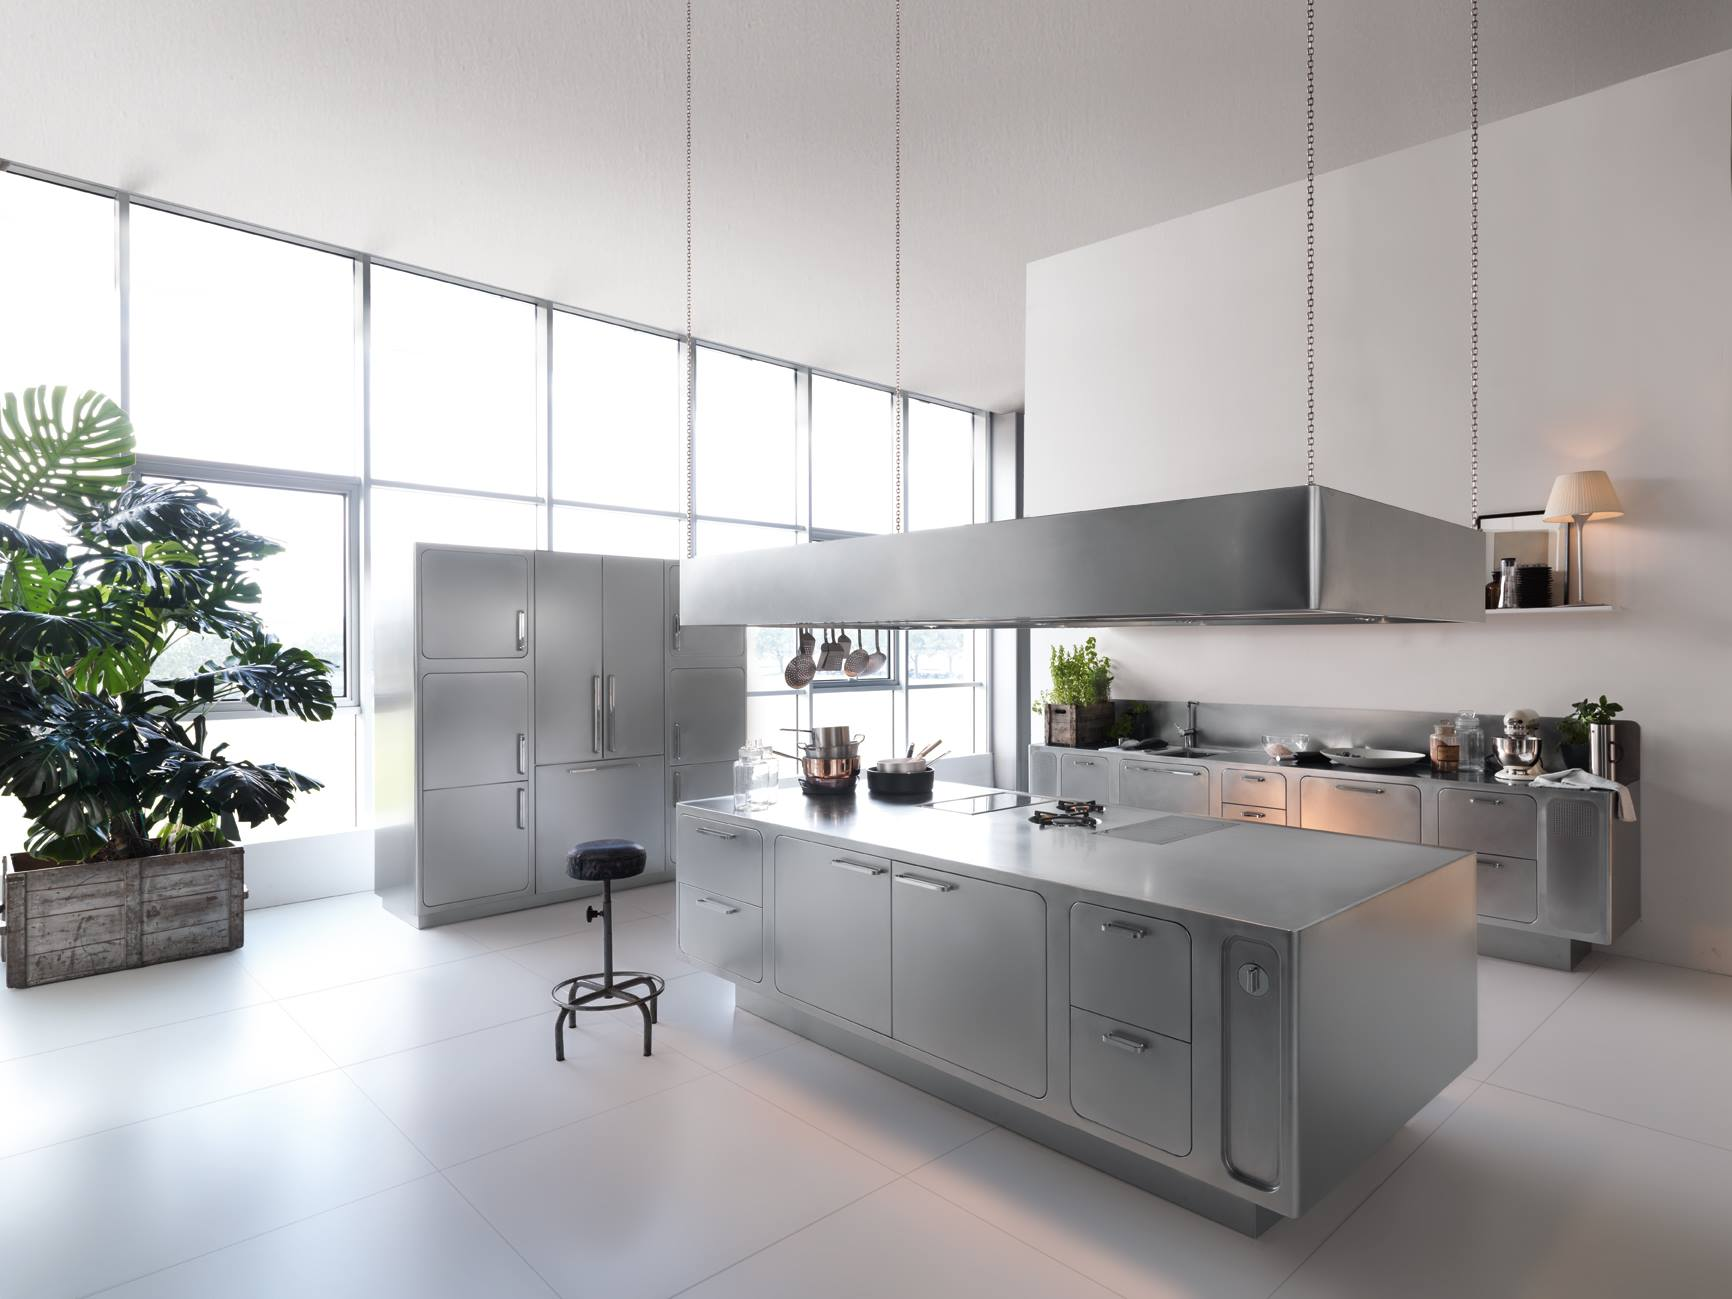 Cook like a masterchef european kitchen for Kitchen design gallery photos